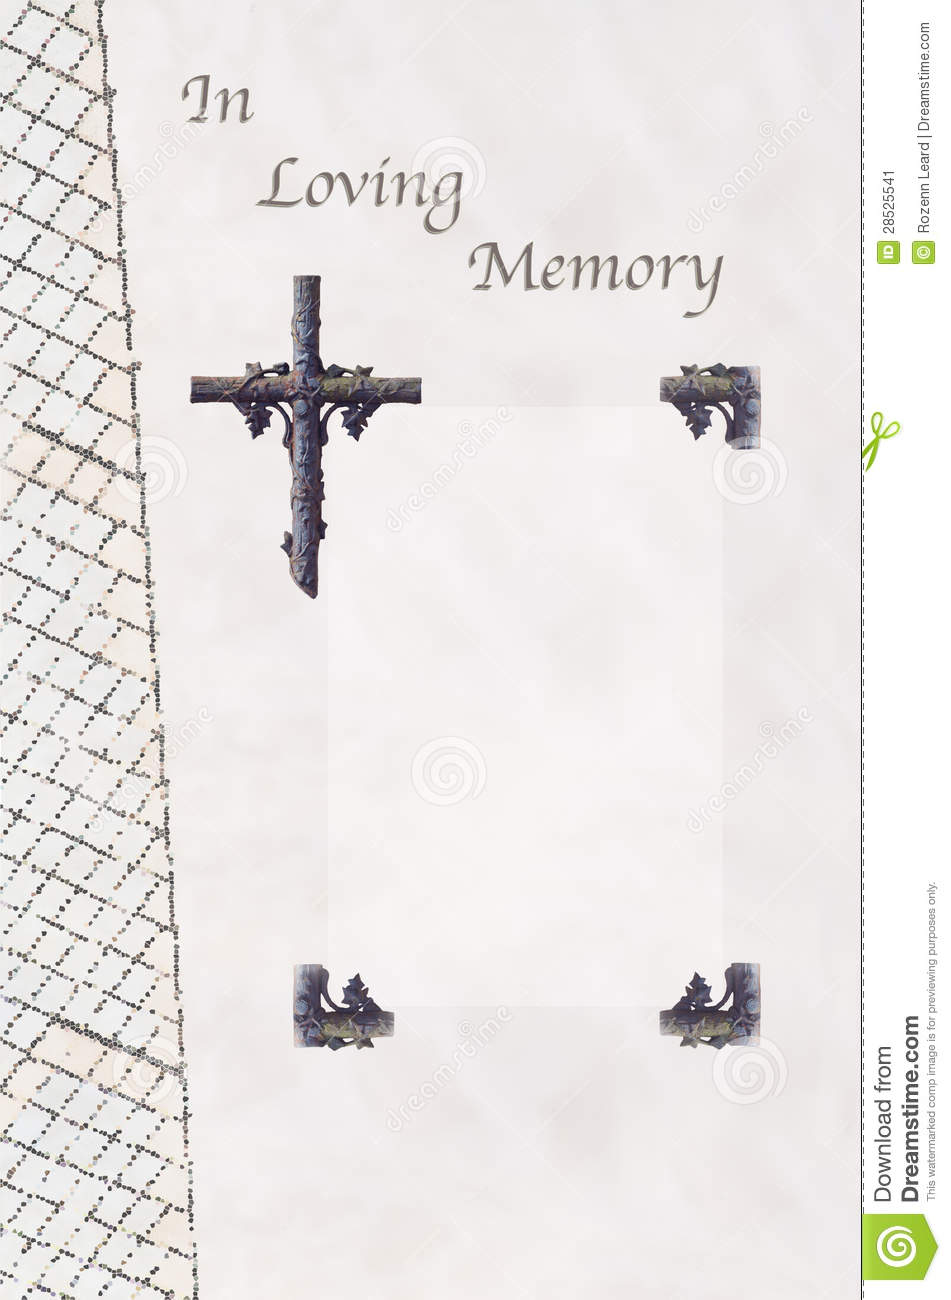 Funeral guest book stock image image 28525541 for In loving memory templates